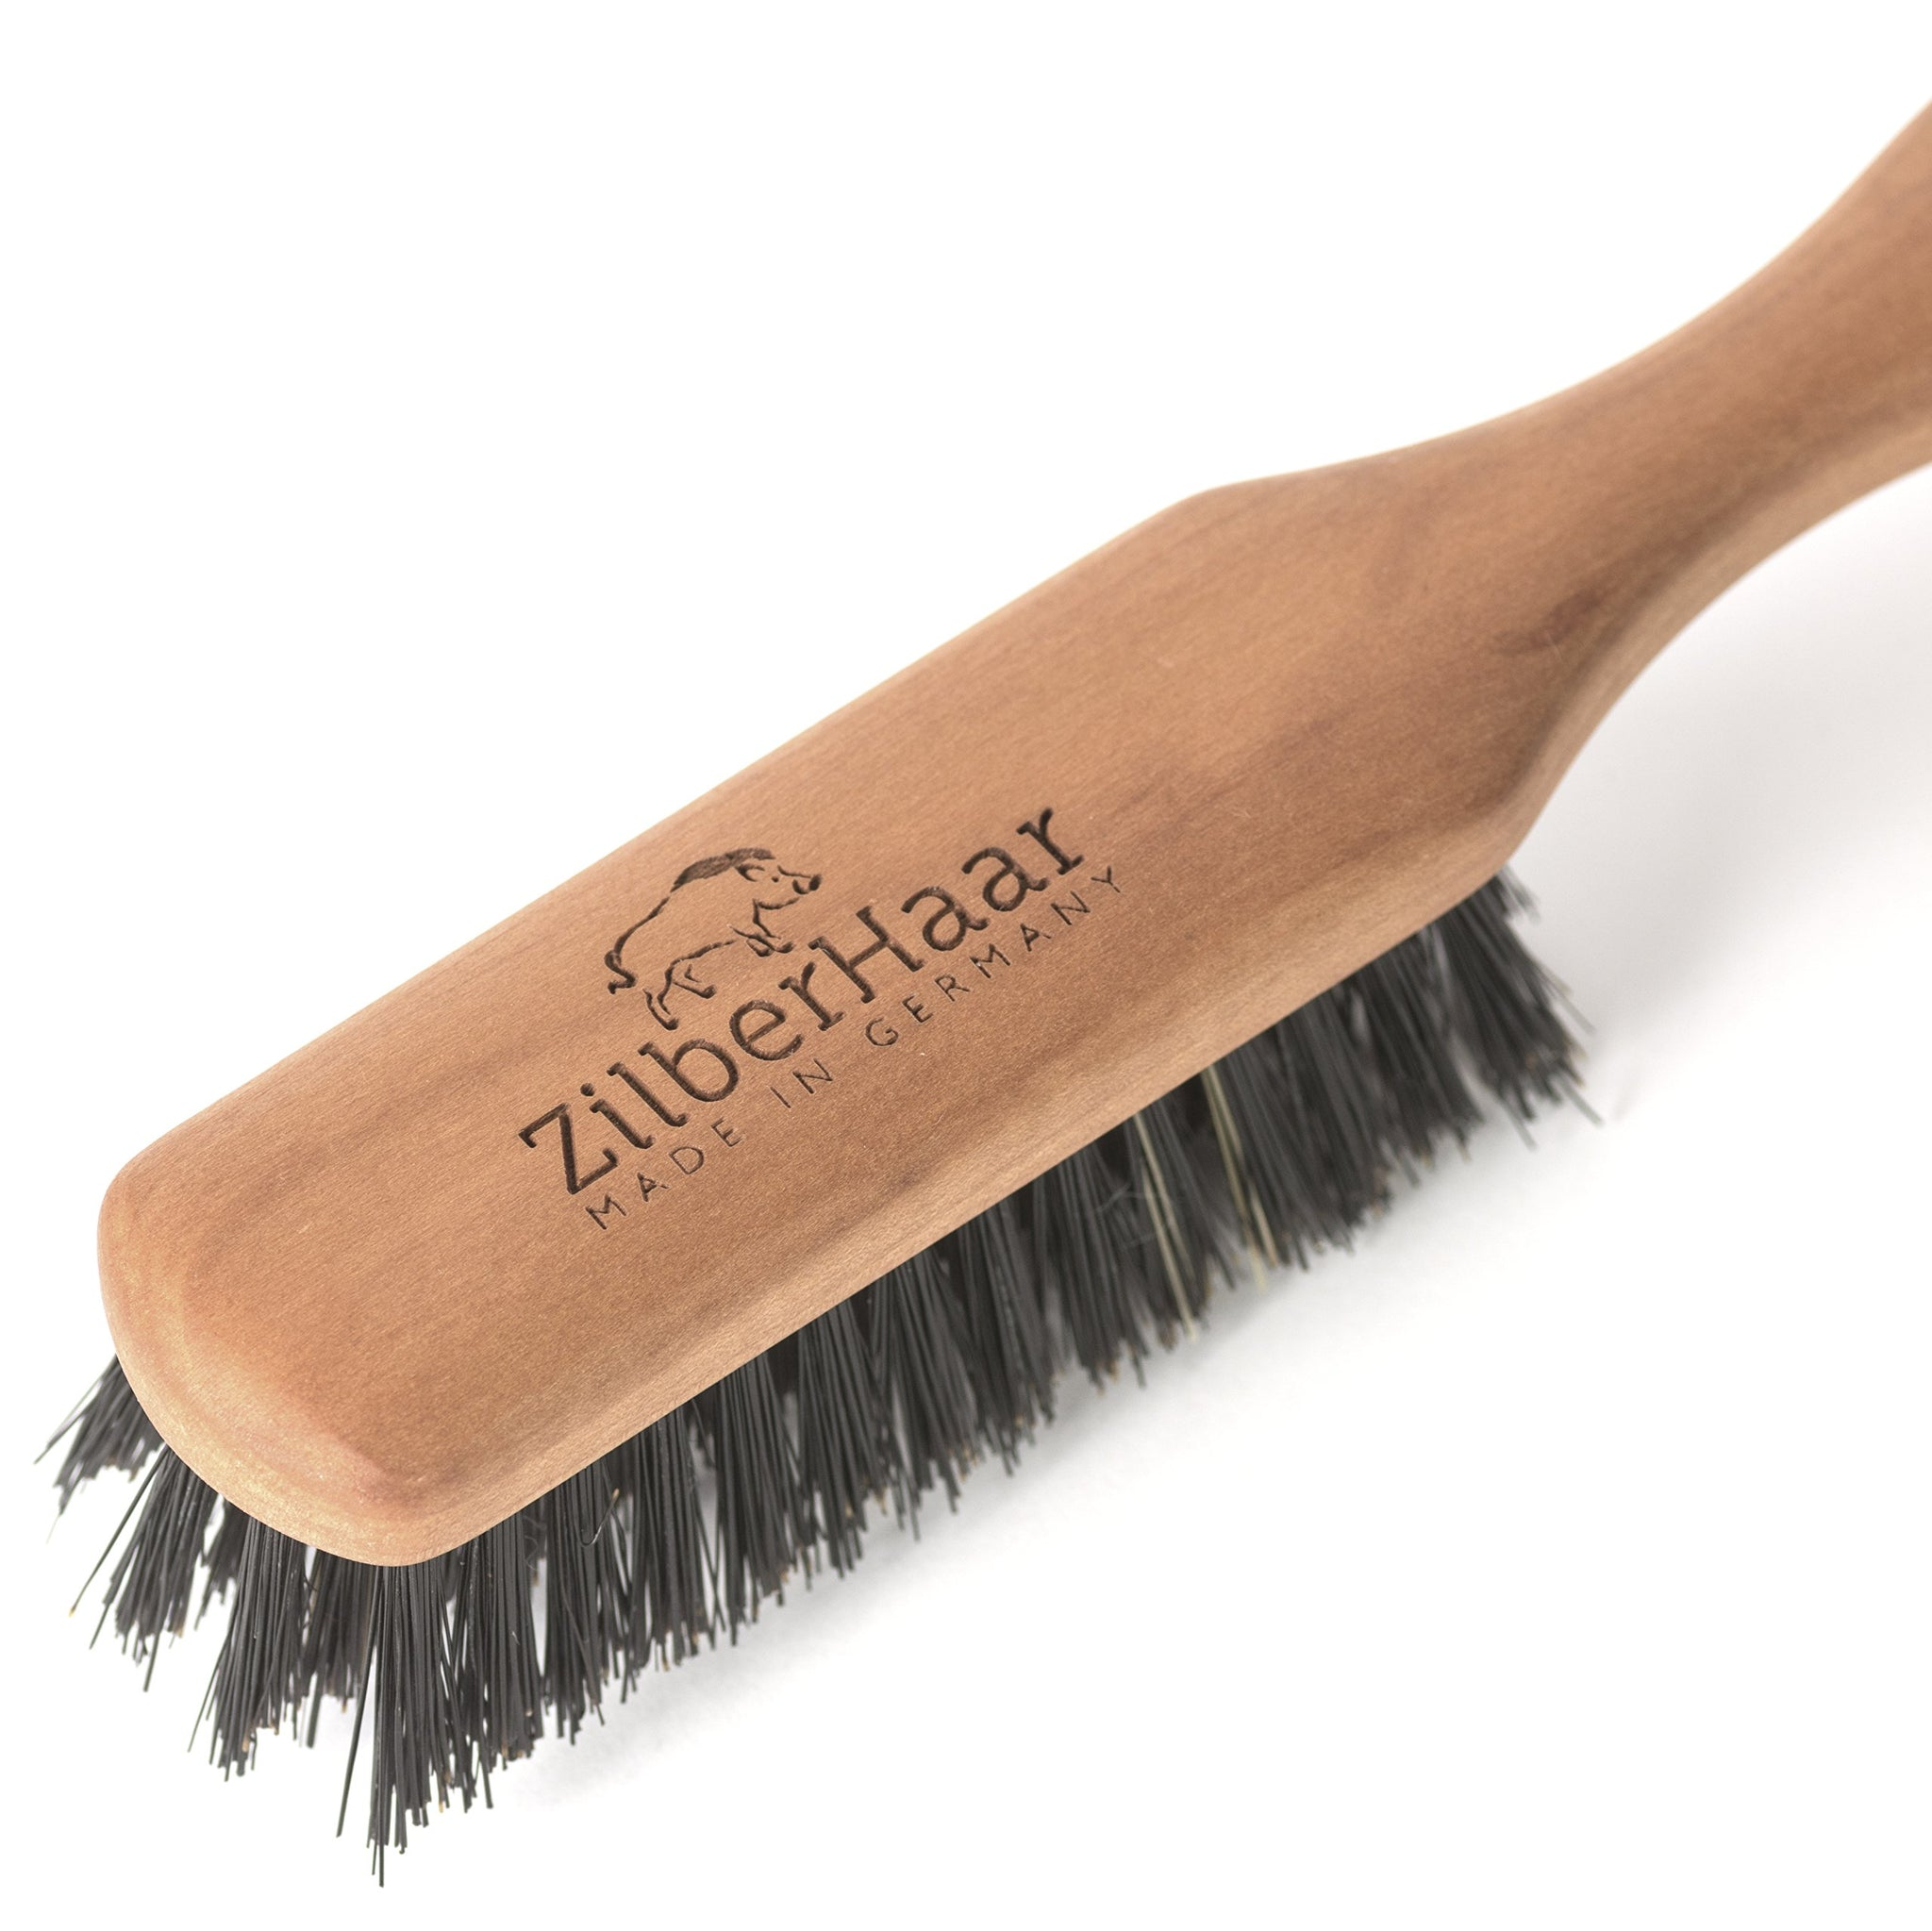 Boar Bristle Beard Brush by Zilber